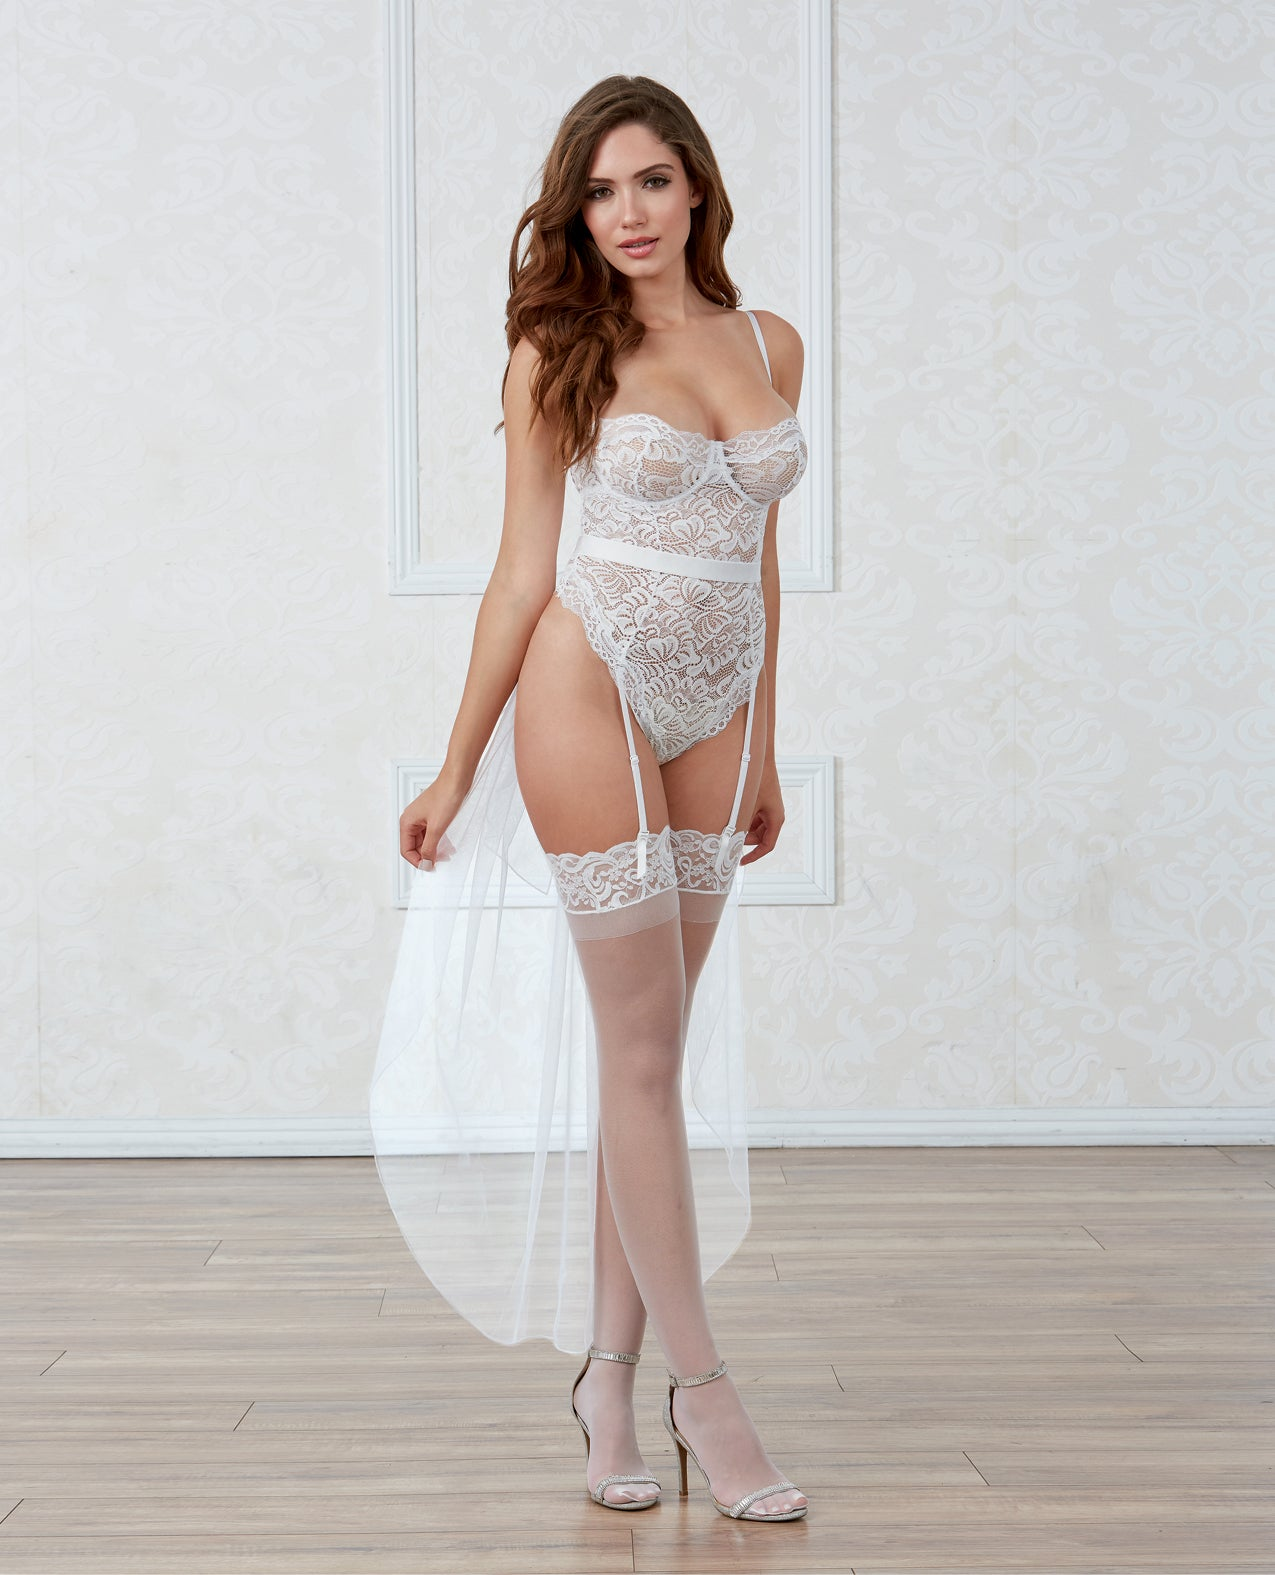 Stretch Lace  Snap Crotch Teddy w/Underwire Cups  & Bridal Belt Tulle Train - White